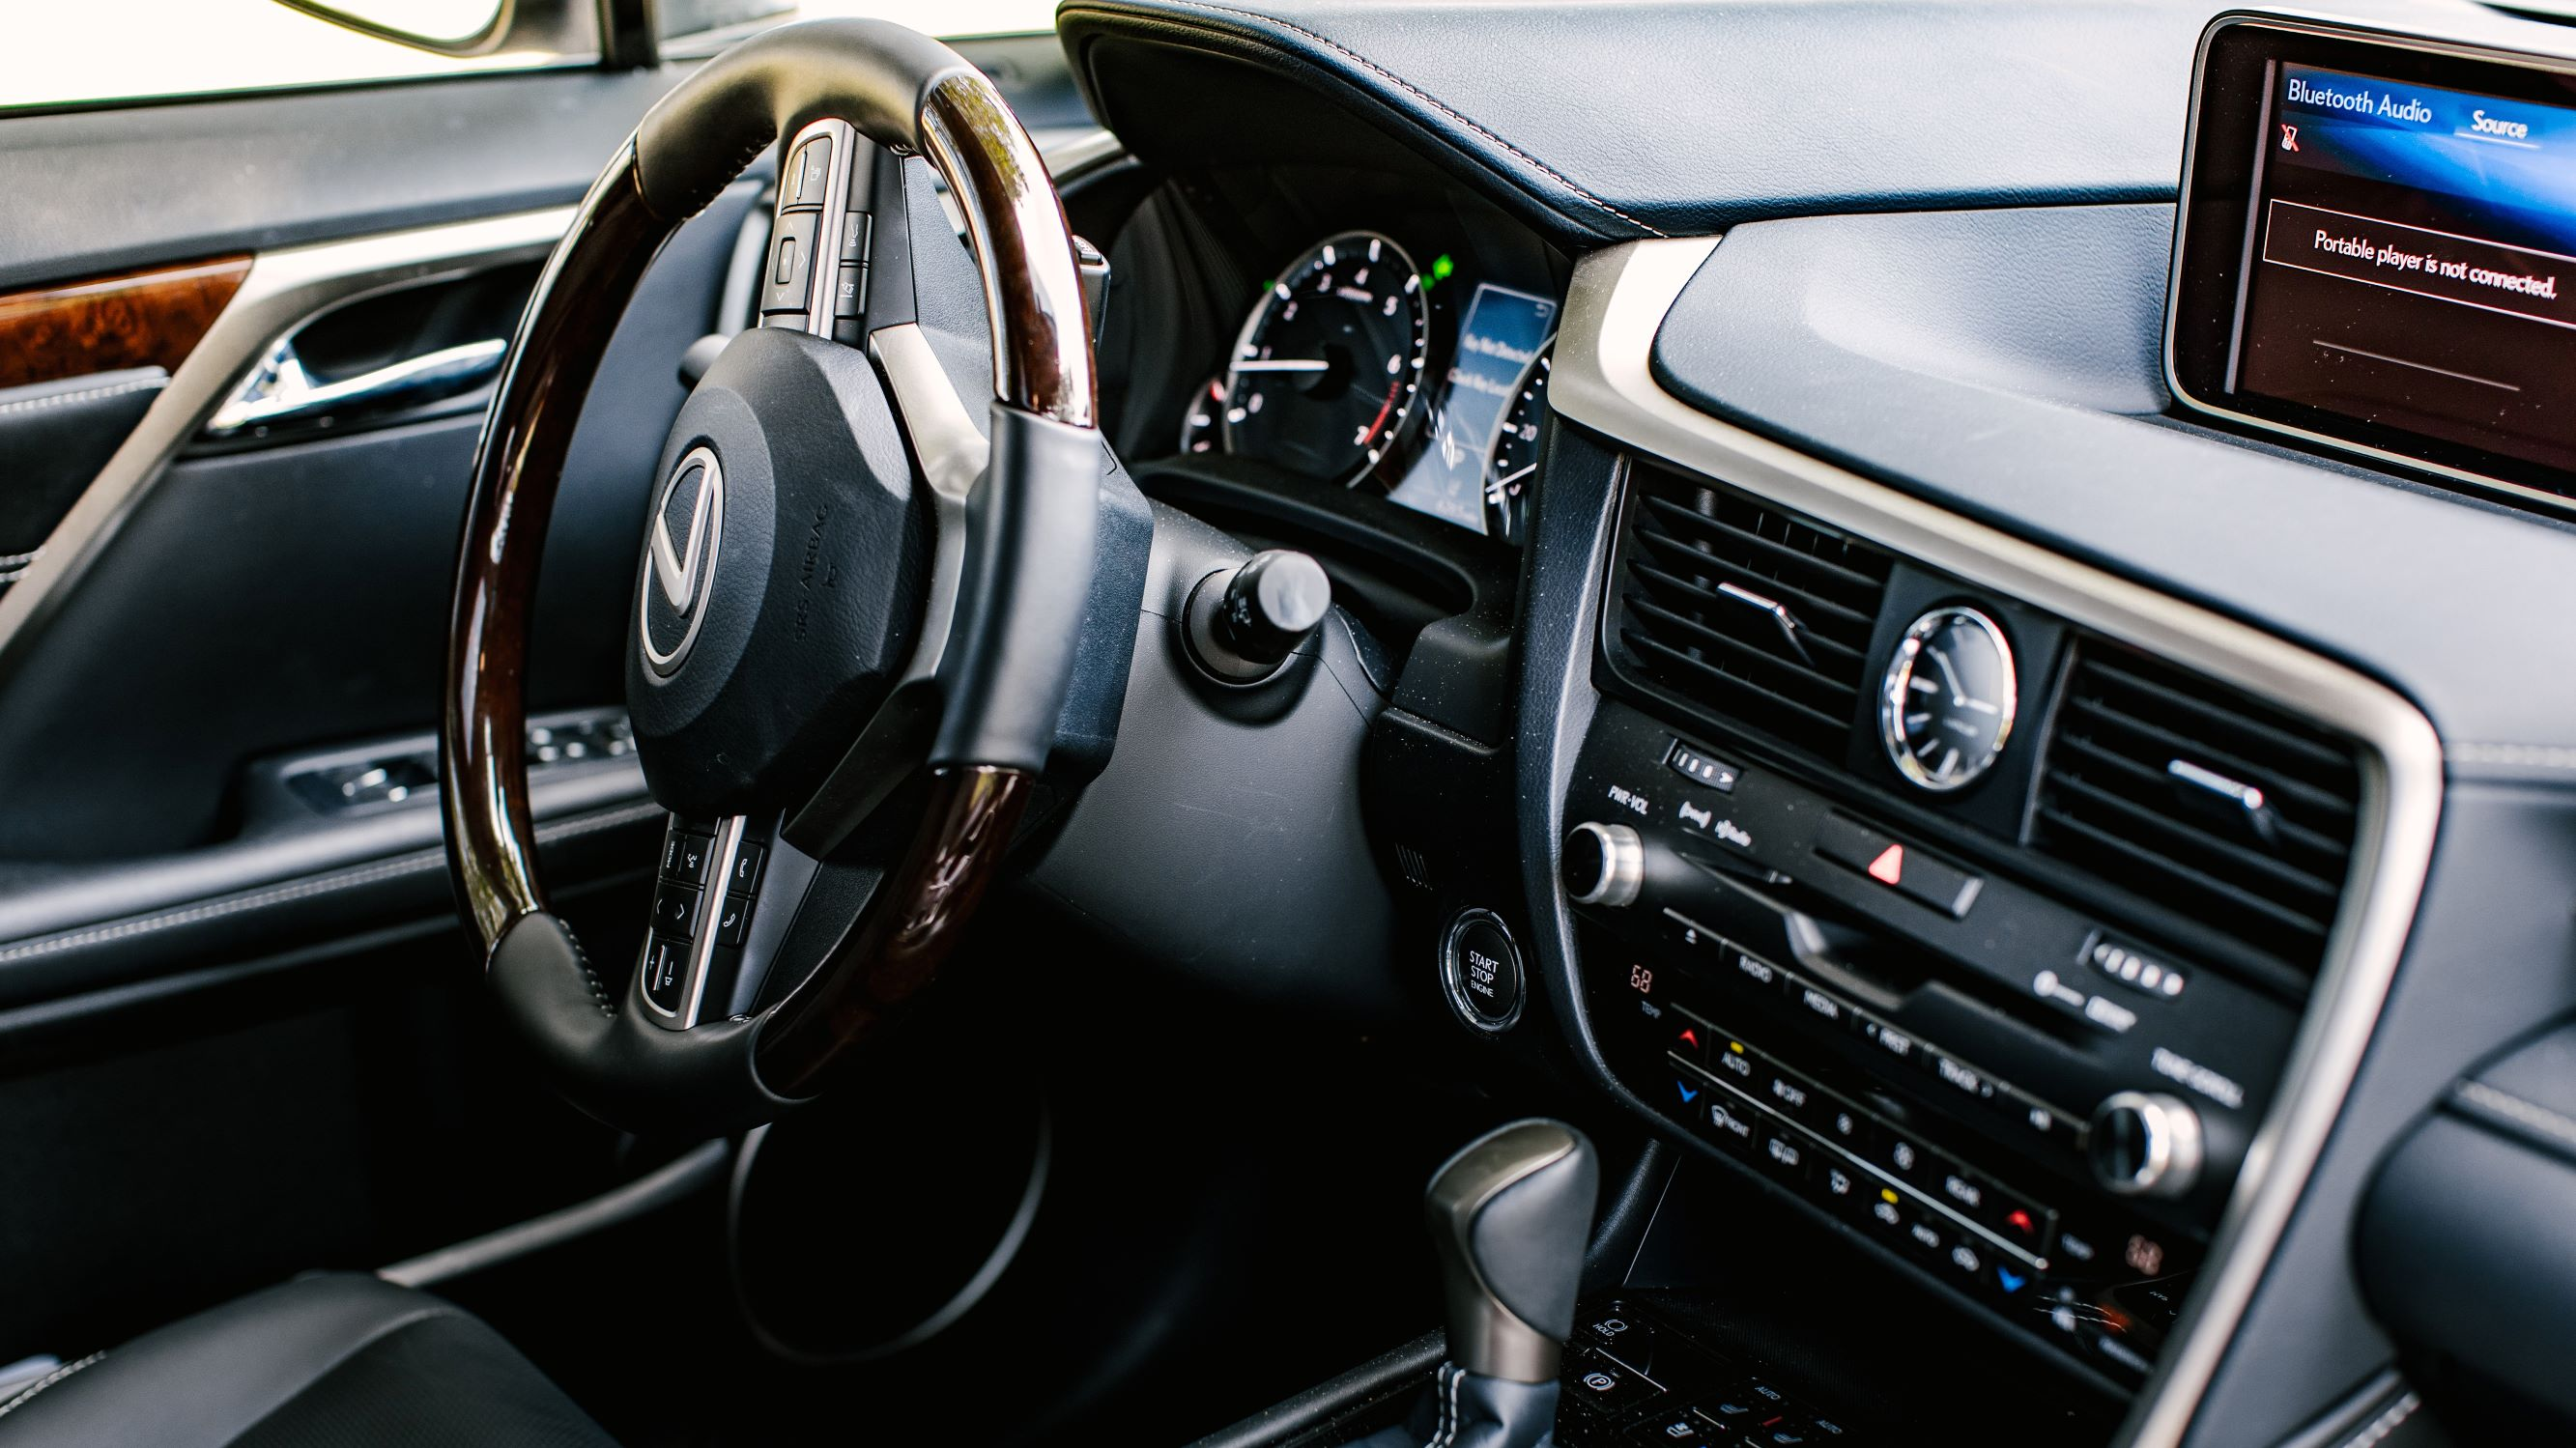 Why the 2019 Lexus RX350L doesn't use a touchscreen (and why that's